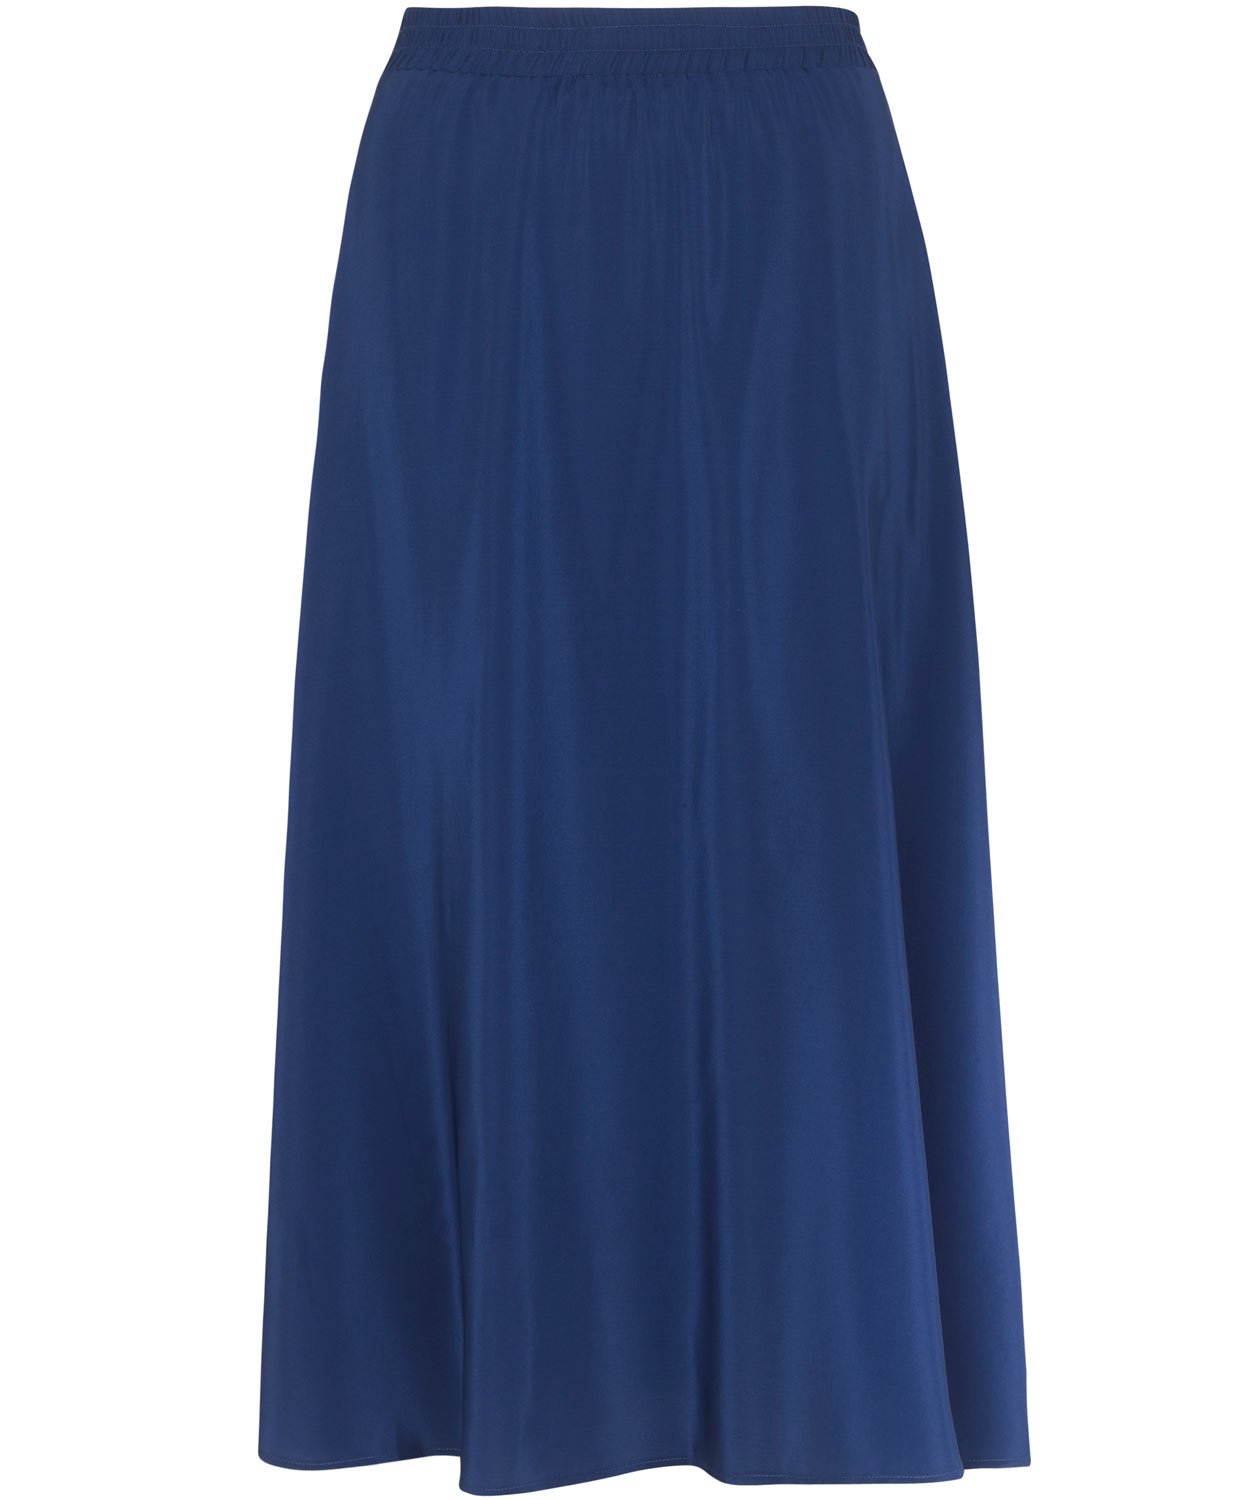 tucker navy high waisted silk midi skirt in blue navy lyst